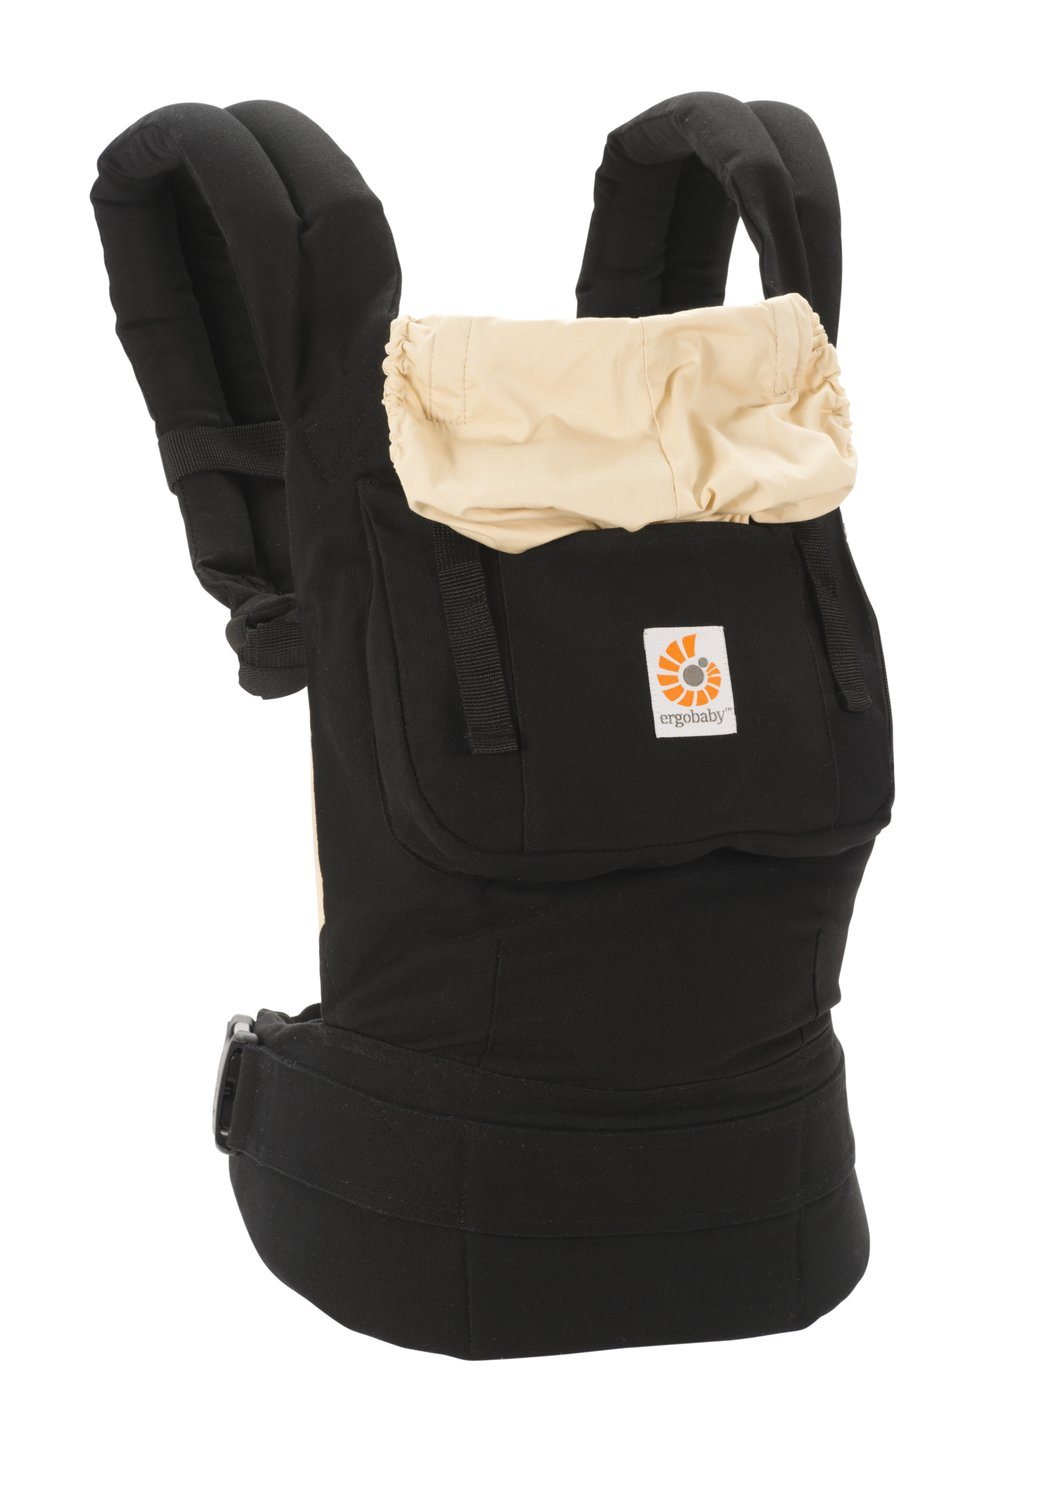 55c9ebf7559 Amazon.com   Ergobaby Original Collection Baby Carrier